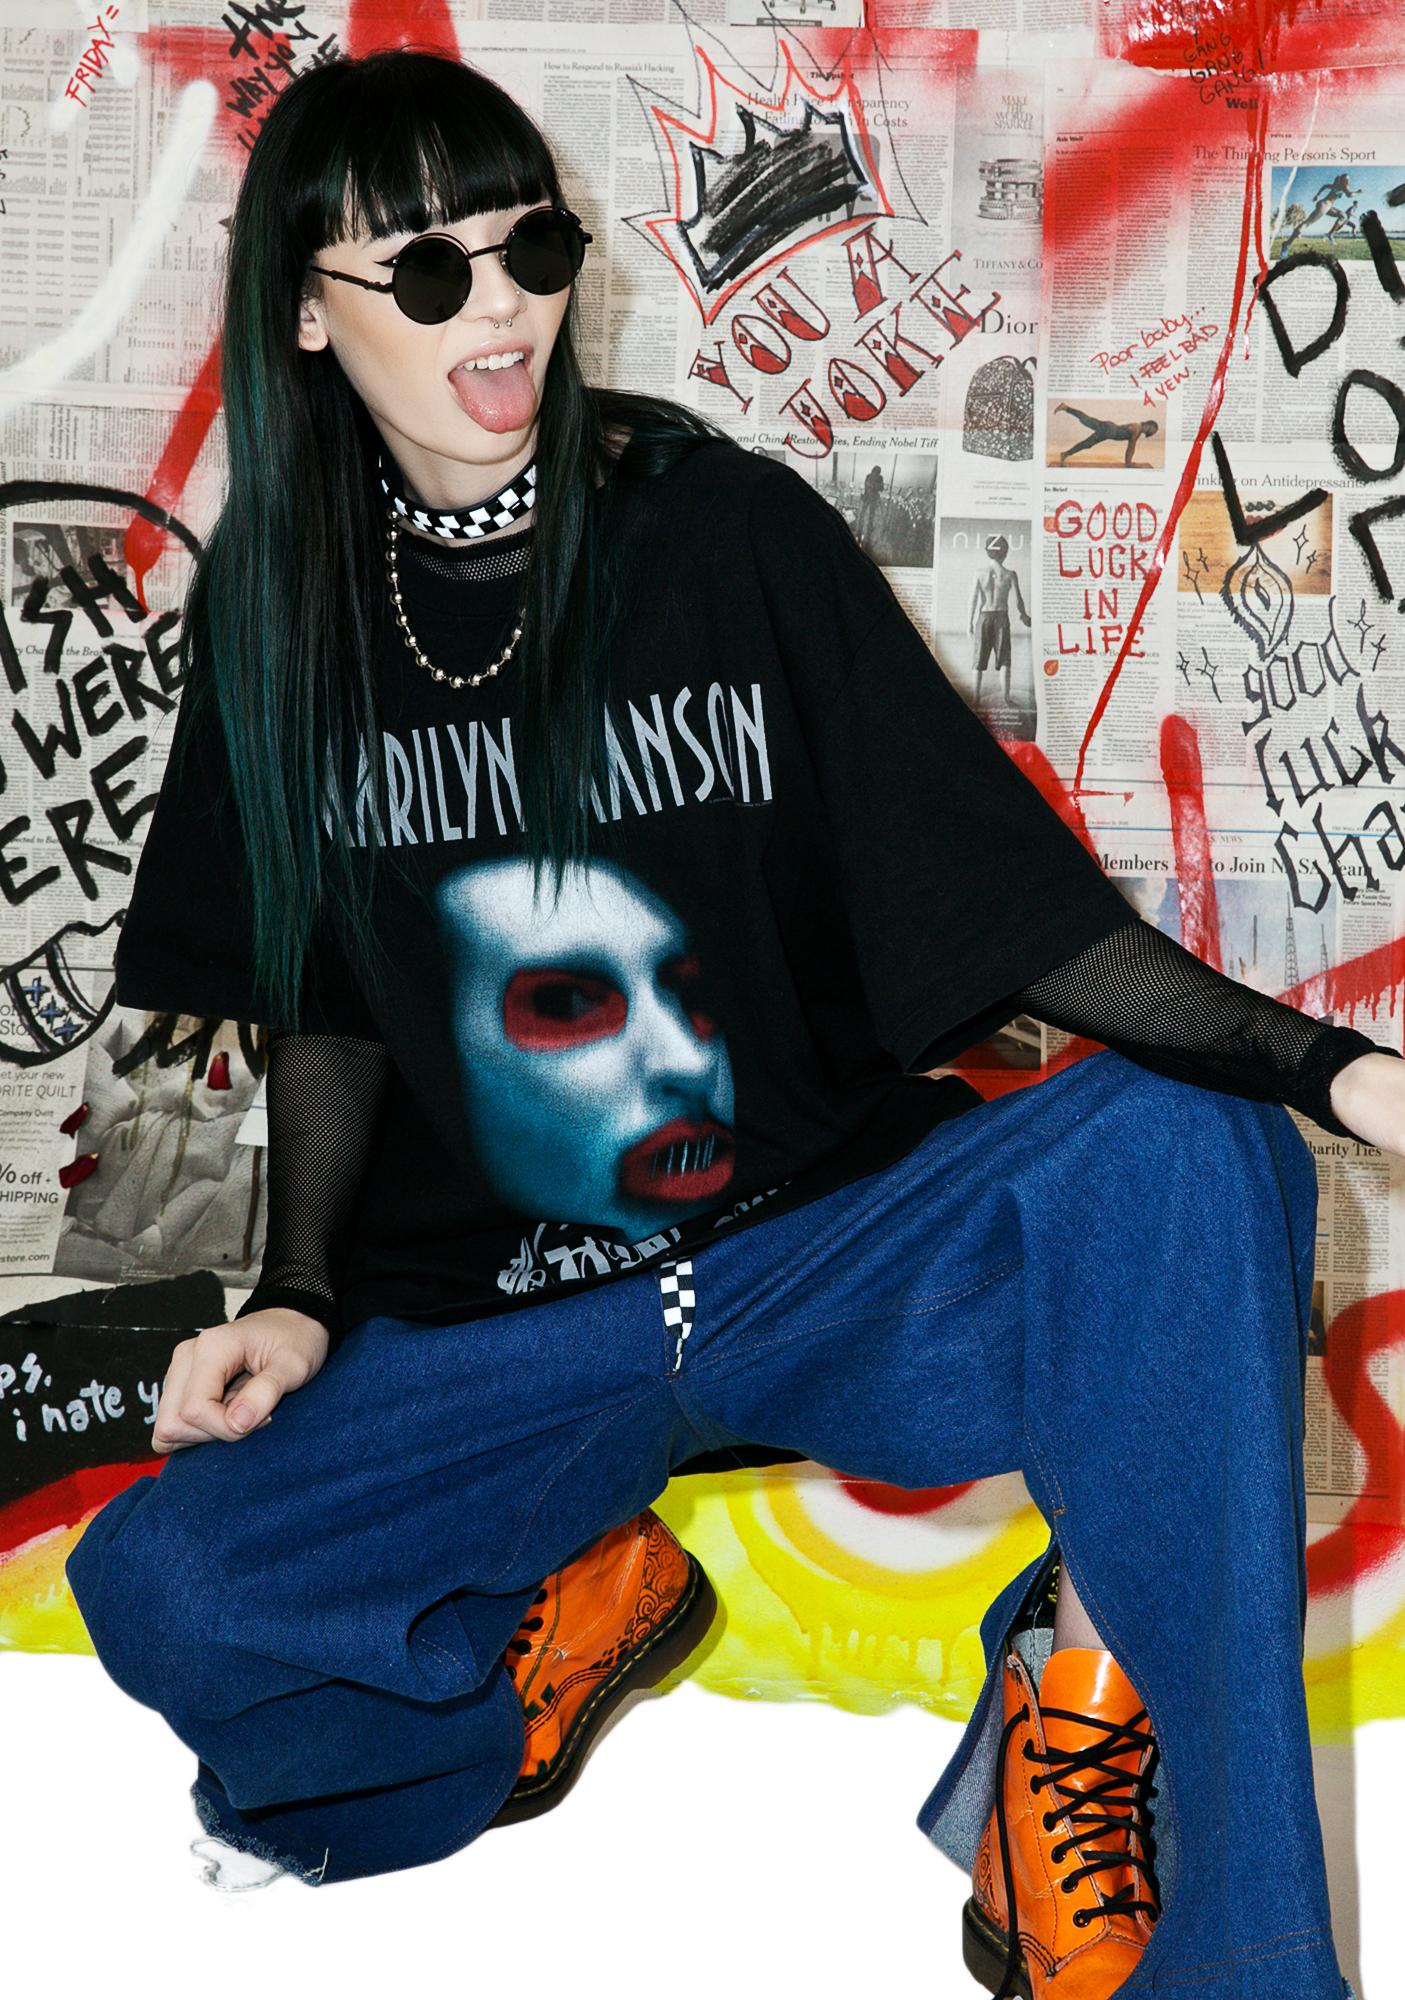 Vintage Marilyn Manson Golden Age Of Grotesque Tee